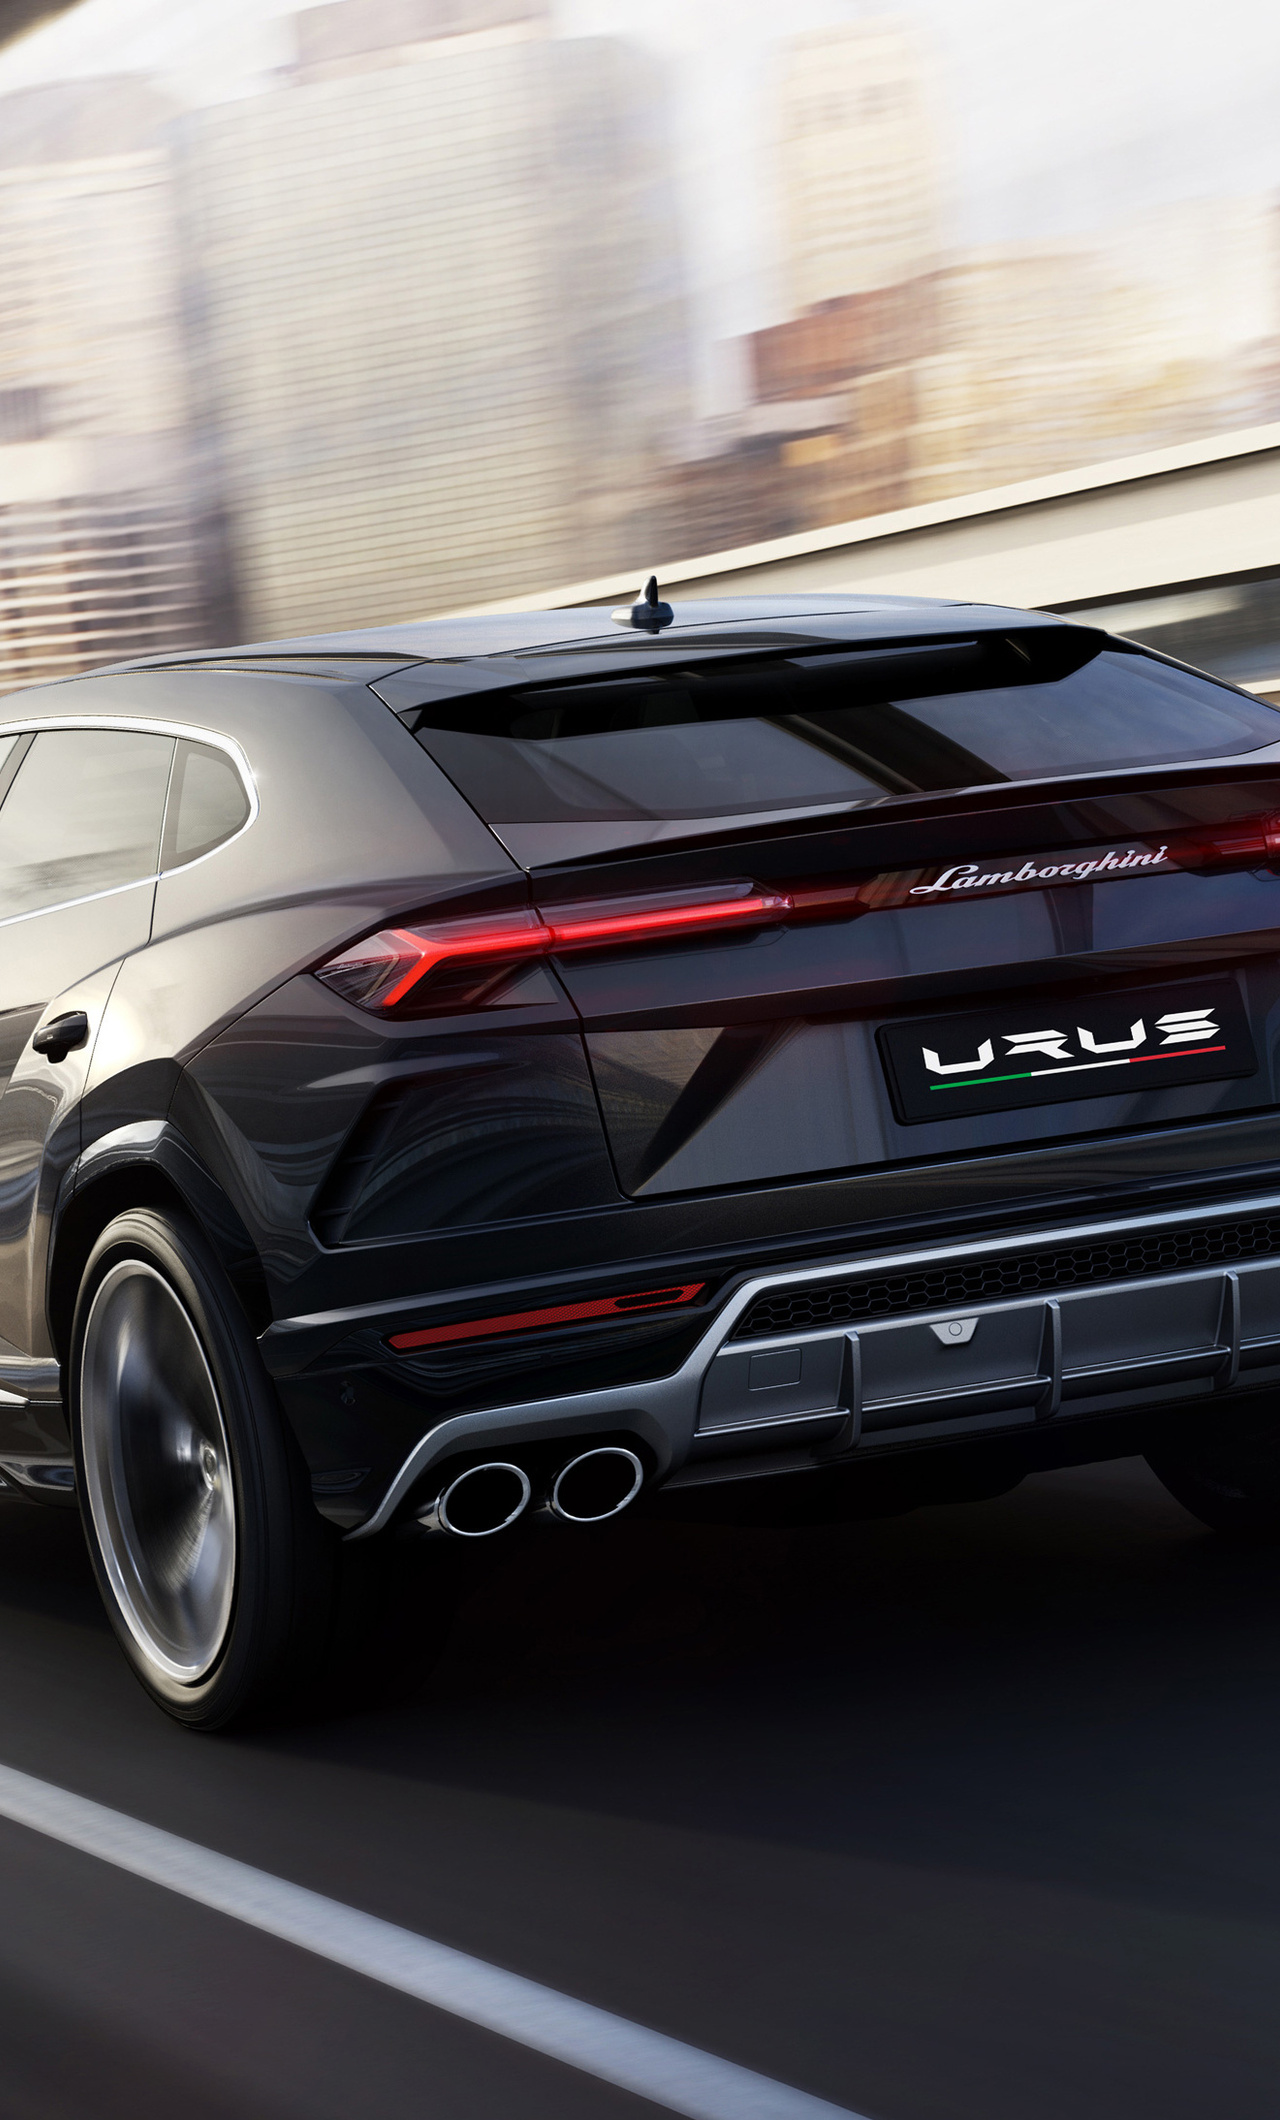 1280x2120 black lamborghini urus rear side 2018 iphone 6+ hd 4k